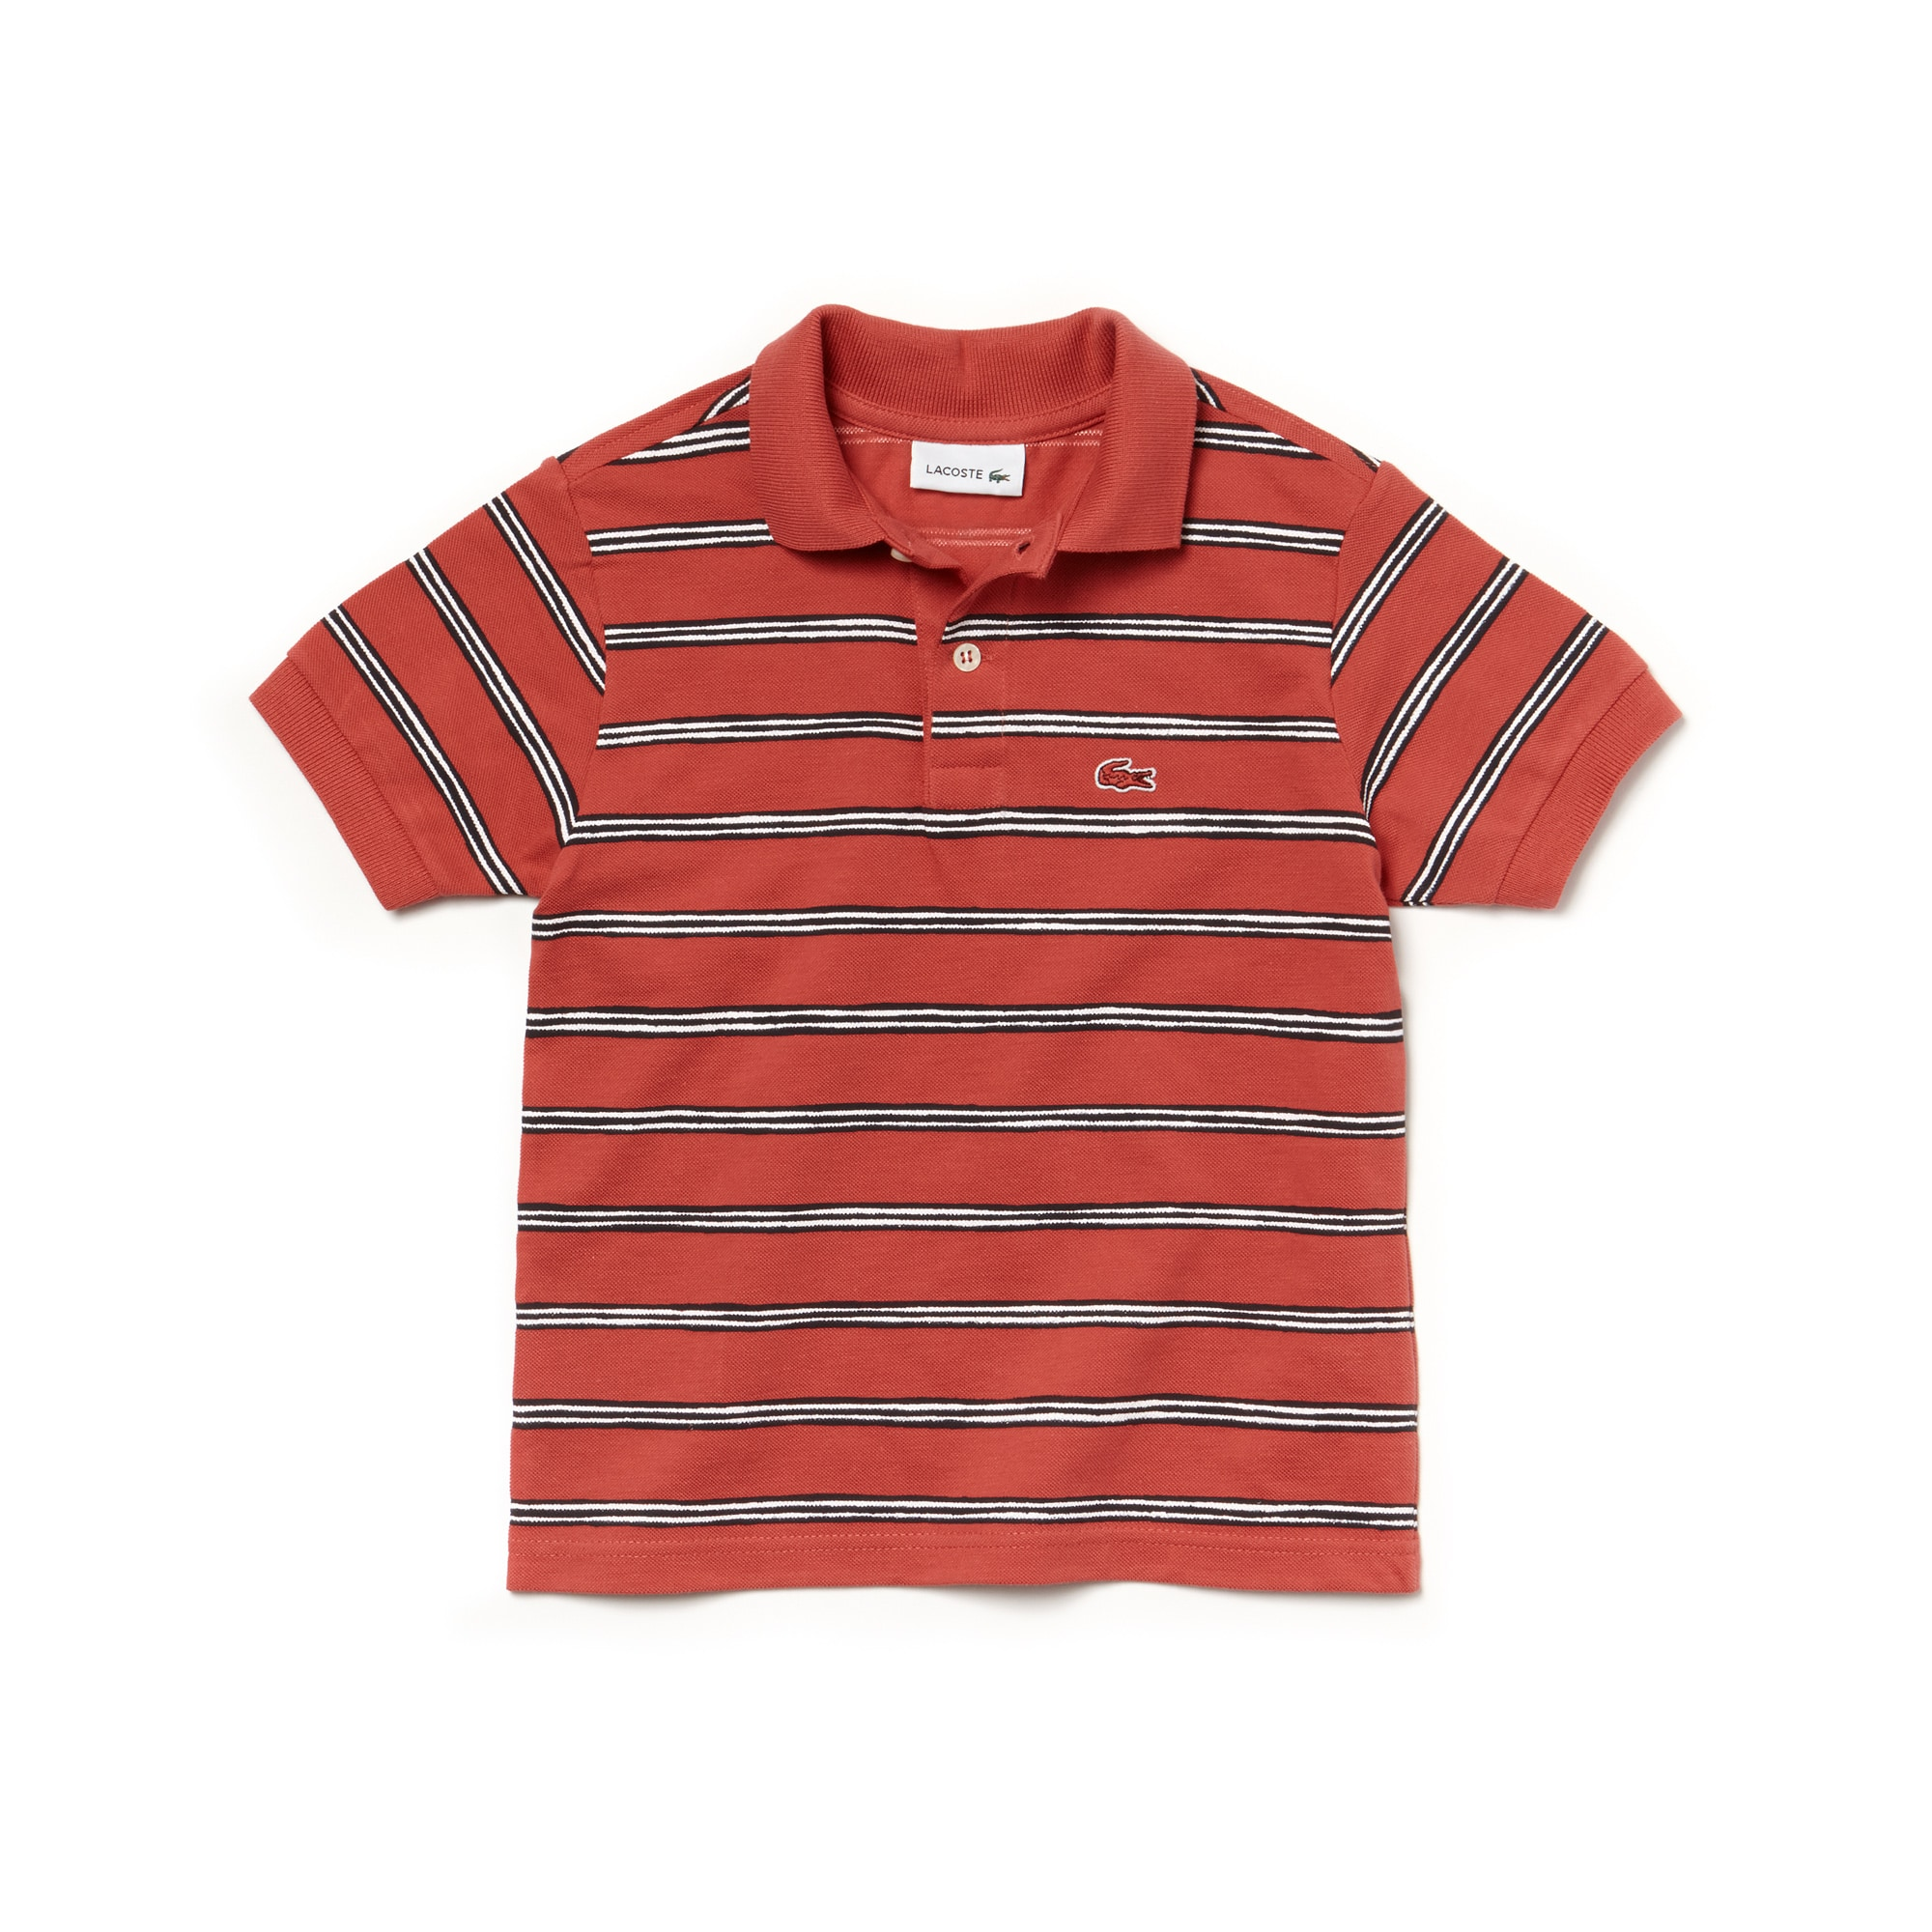 Boys' Lacoste Striped Cotton Mini Piqué Polo Shirt